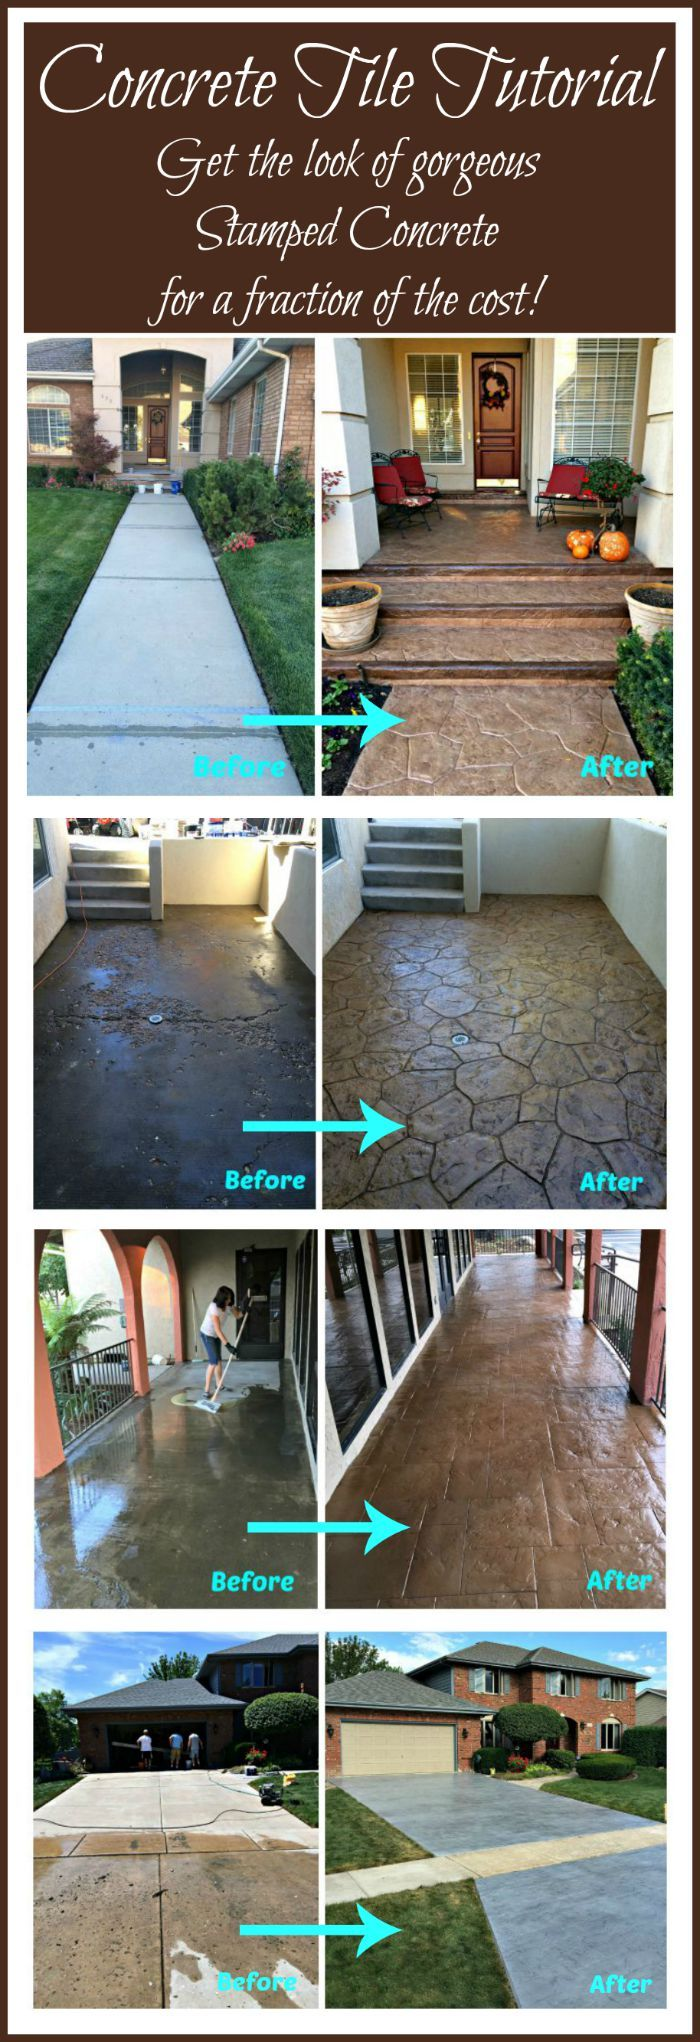 DIY CONCRETE TILE TUTORIAL - Full step by step tutorial on how to get the look of stamped concrete for a fraction of the cost, using concrete tiles!